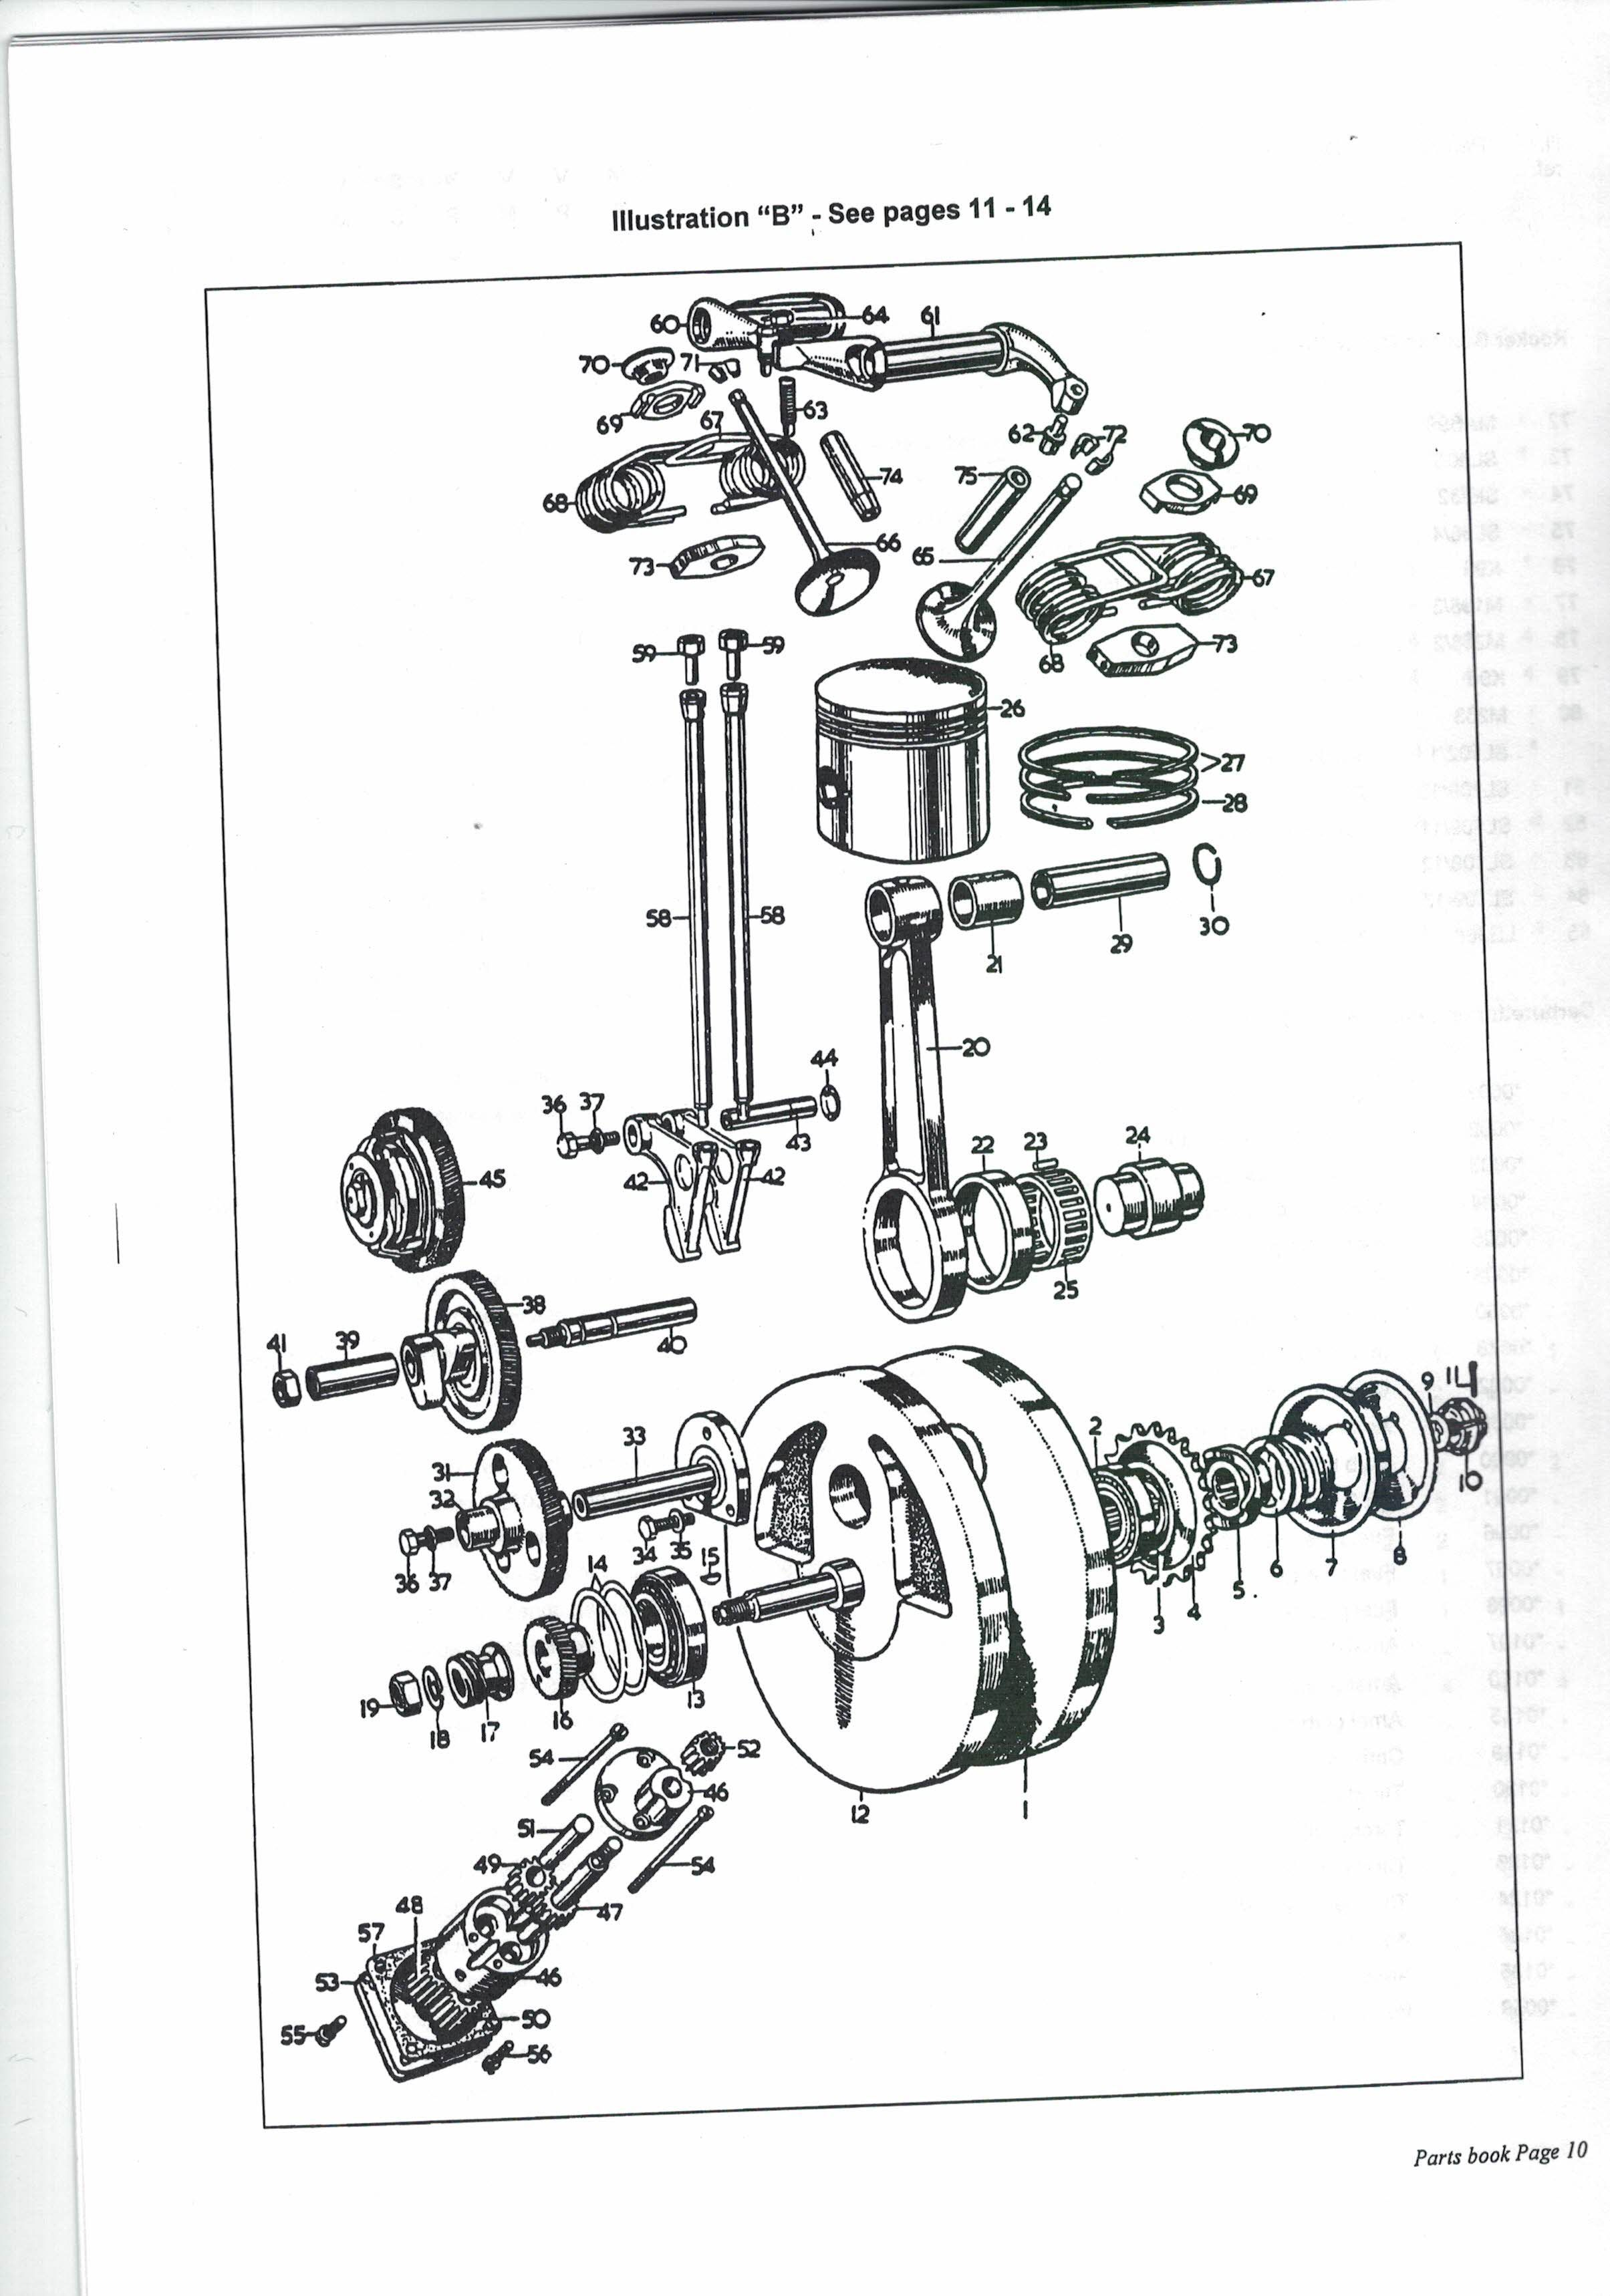 Diagrams of Engine,Clutch & Gearbox Part numbers